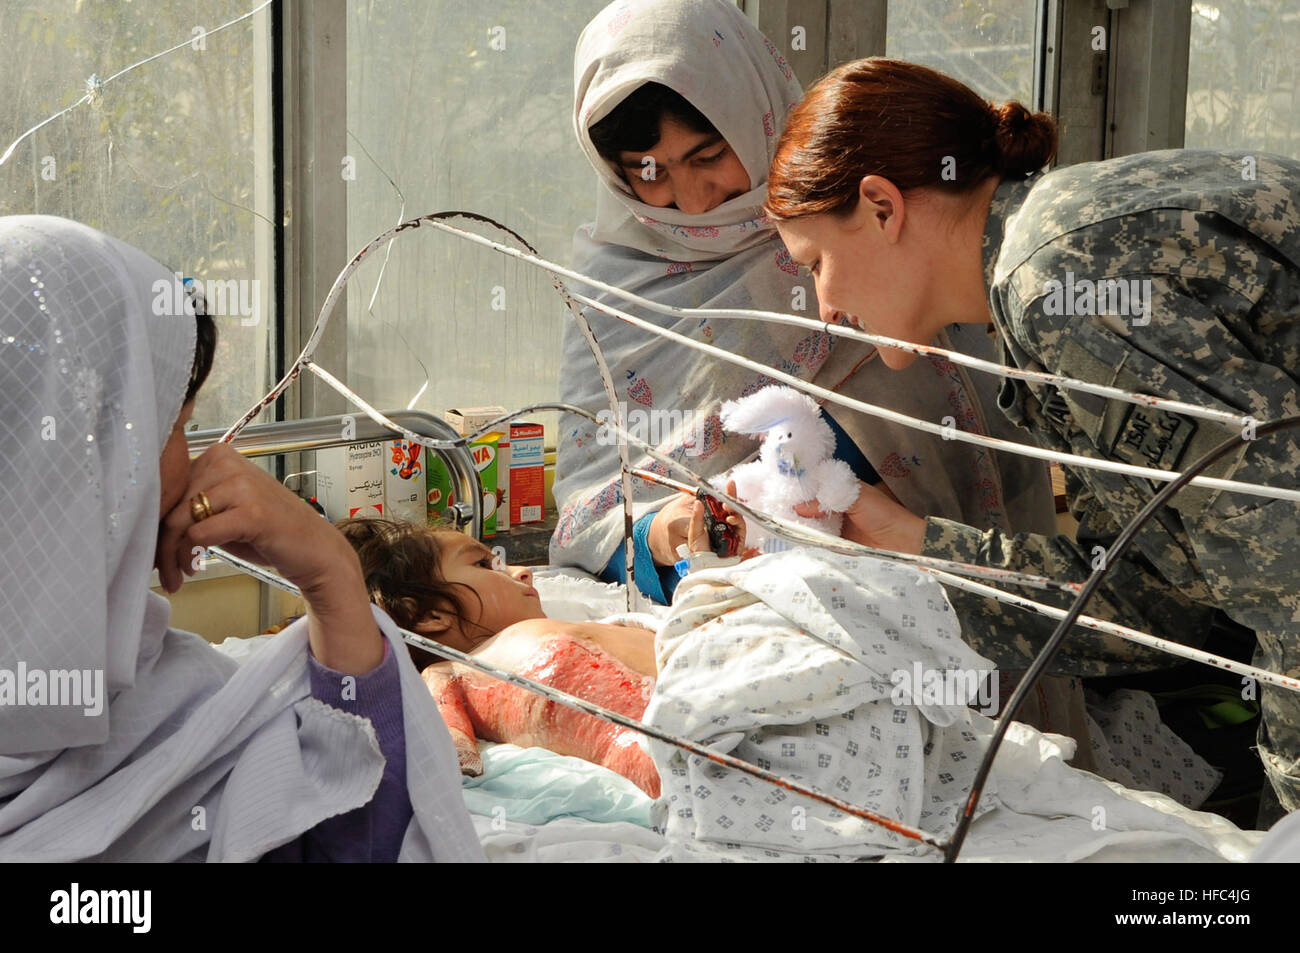 Burn Ward Stockfotos & Burn Ward Bilder - Alamy